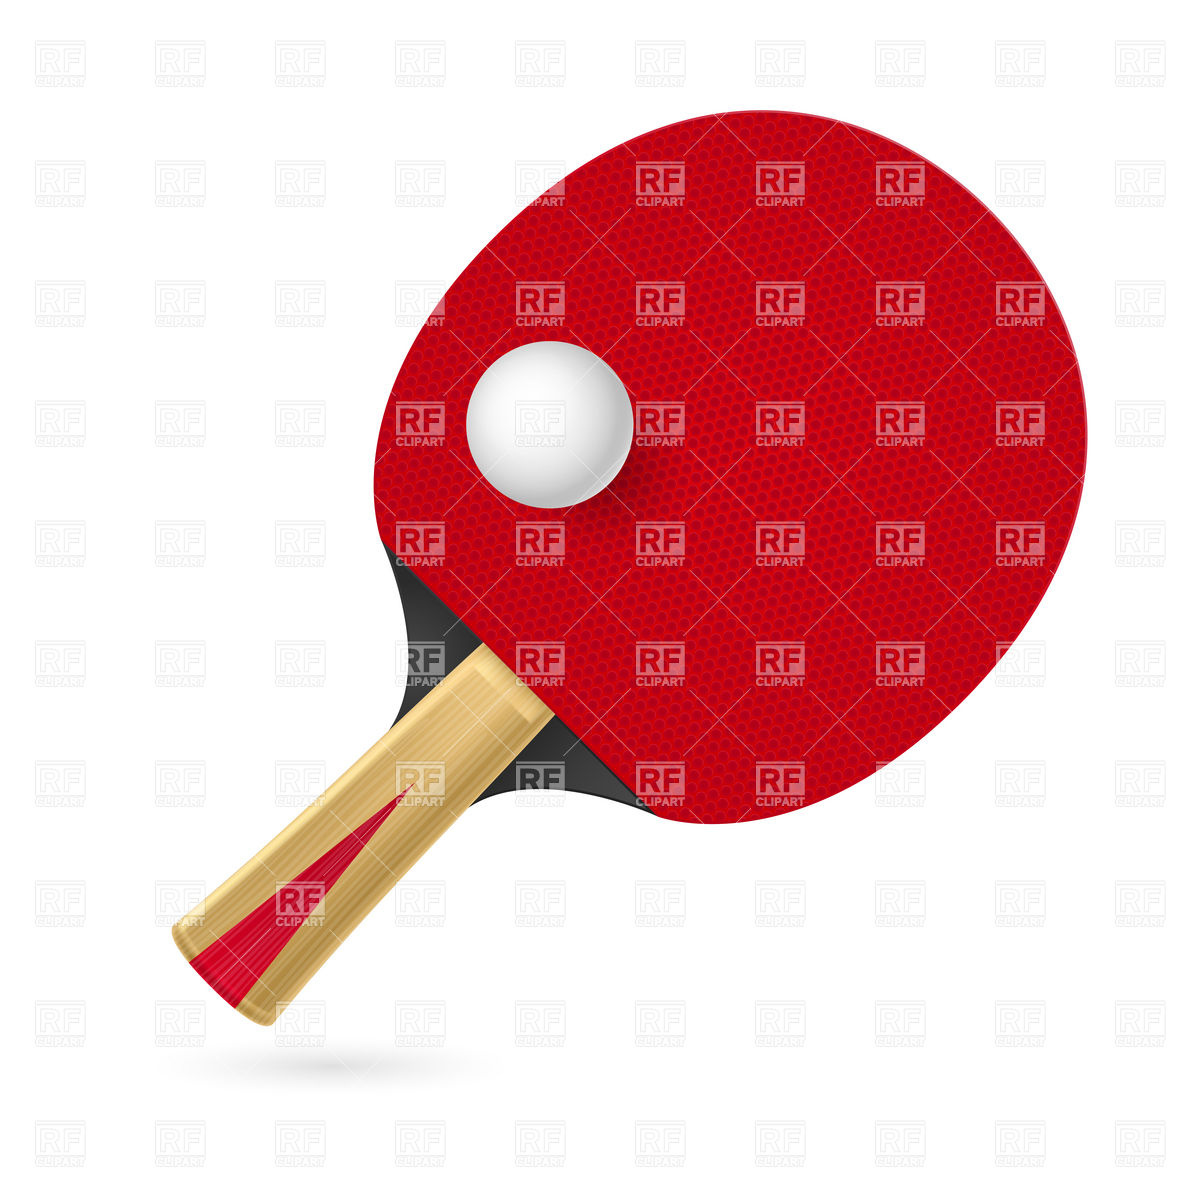 1200x1200 Red Ping Pong (Table Tennis) Racket And Ball Vector Image Vector